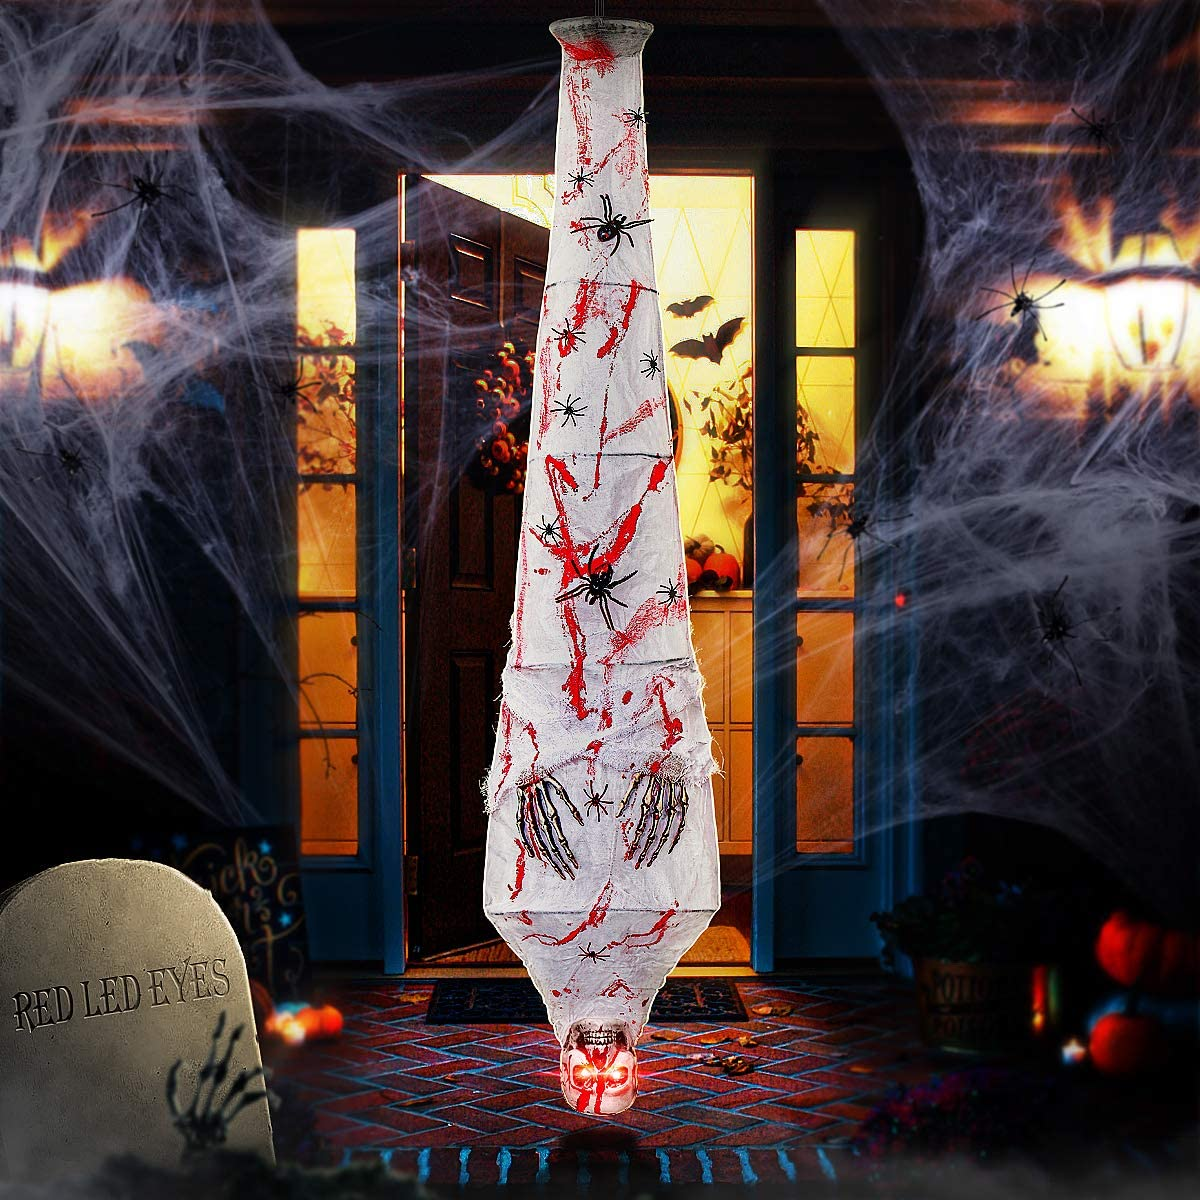 Halloween Decorations Outdoor, Halloween Prop Hanging Cocoon Corpse for Halloween Creepy Scary Mummy Decorations